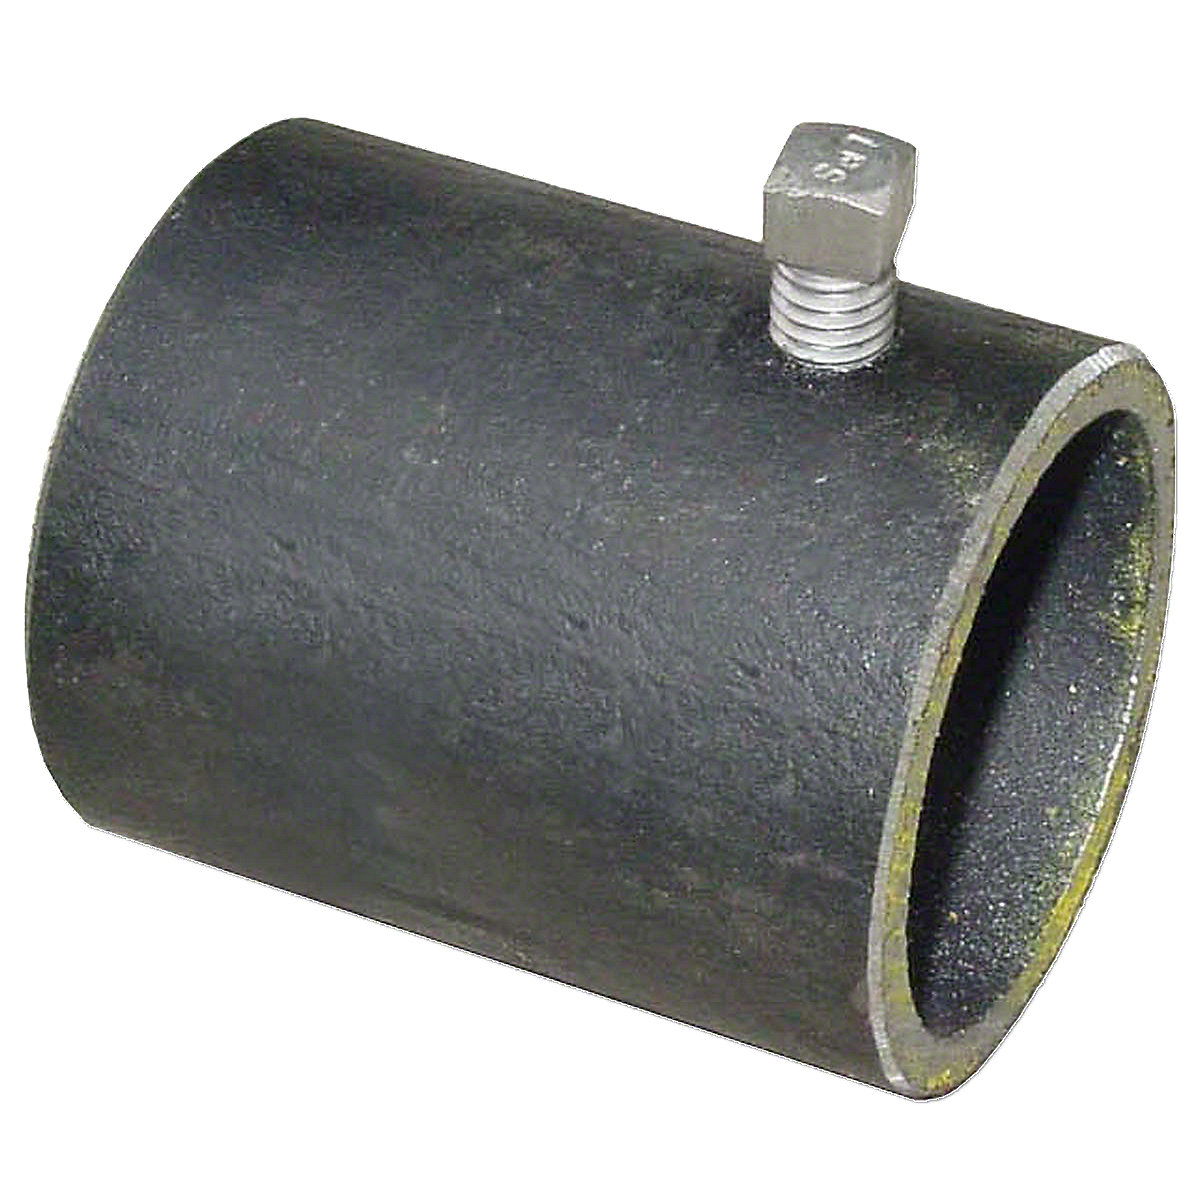 Muffler Adapter For Massey Harris: Colt, Mustang, 101Sr, 101Jr, 102Sr, 20, 22, 81, 82.